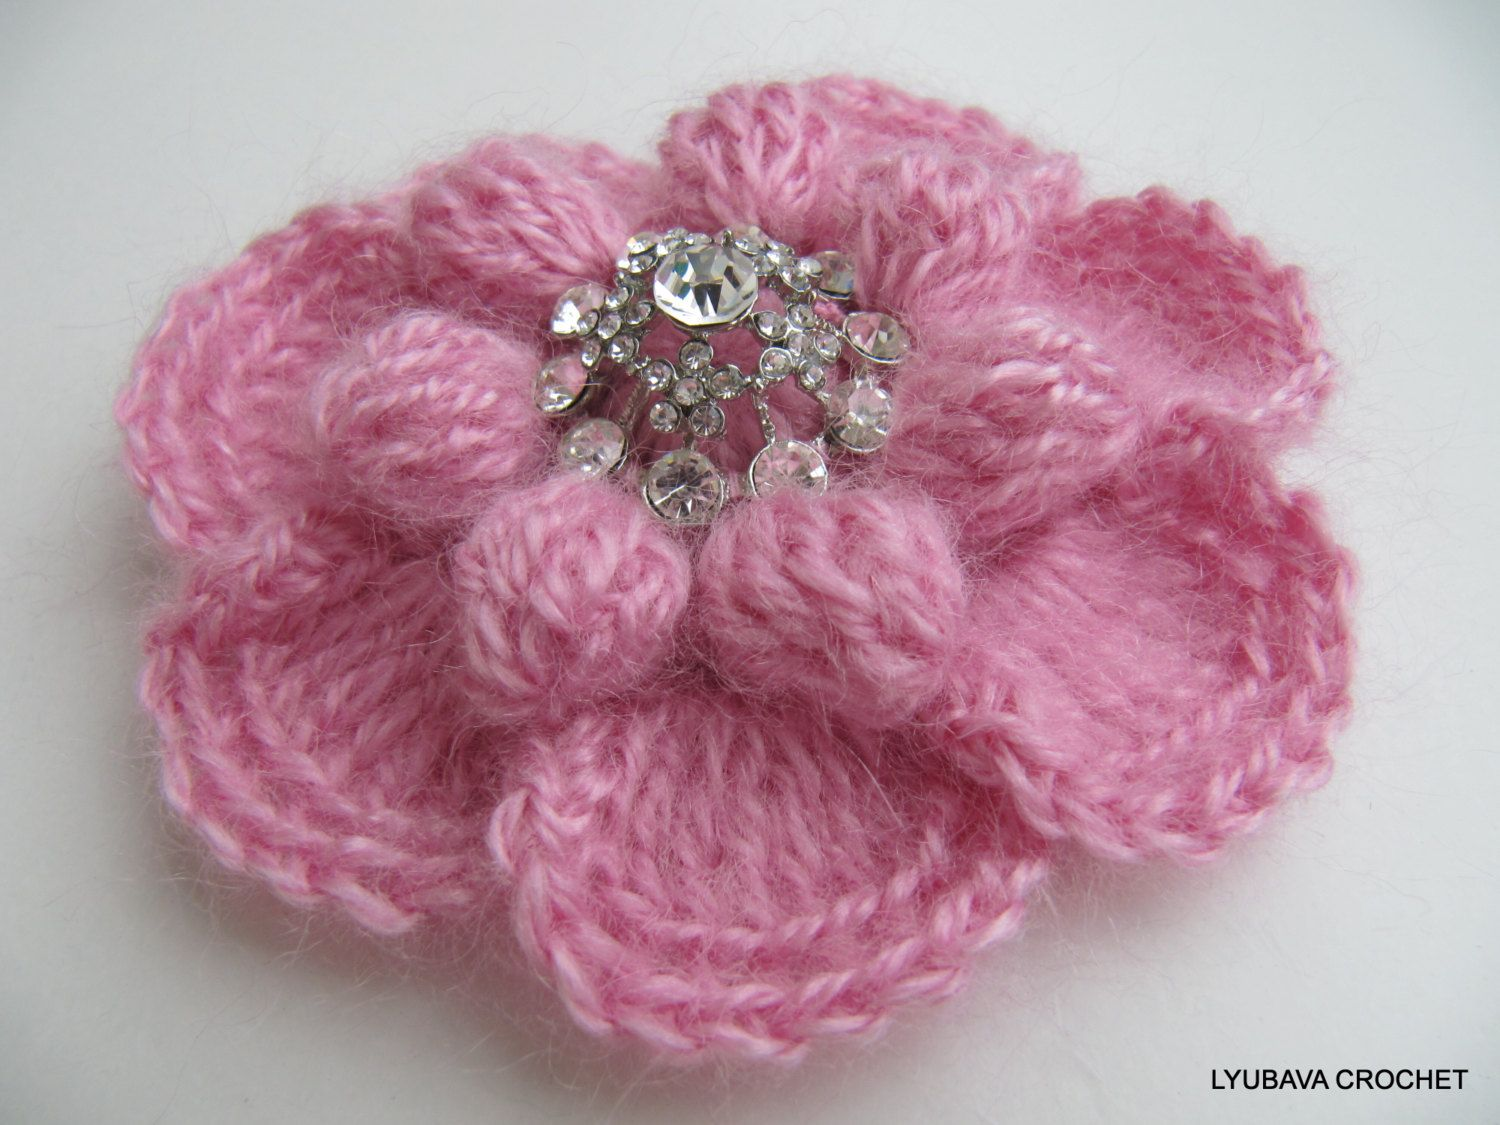 Crochet Flower PATTERN-Crochet Brooch-DIY Gift-Mohair ...